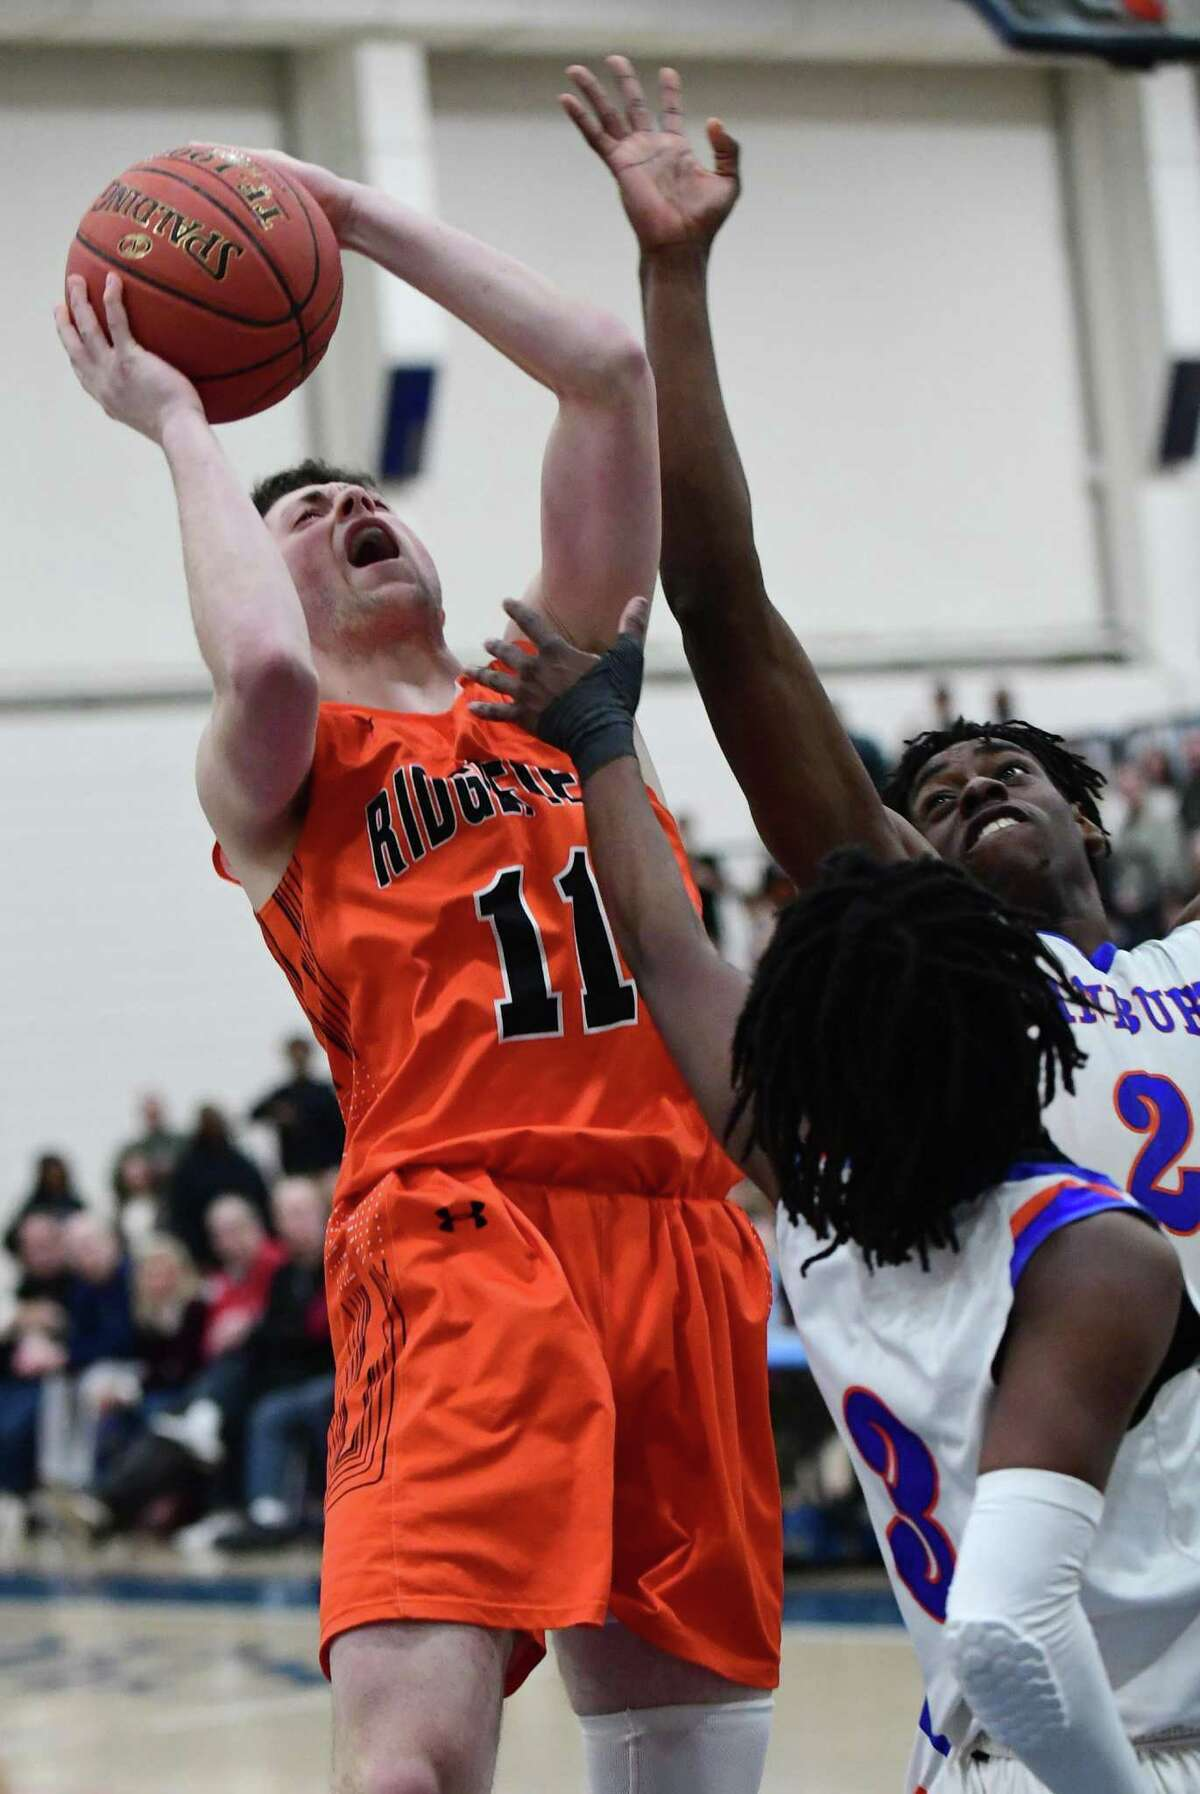 Ridgefield's Luke McGarrity scored 33 points in just three quarters in a win over New Canaan.